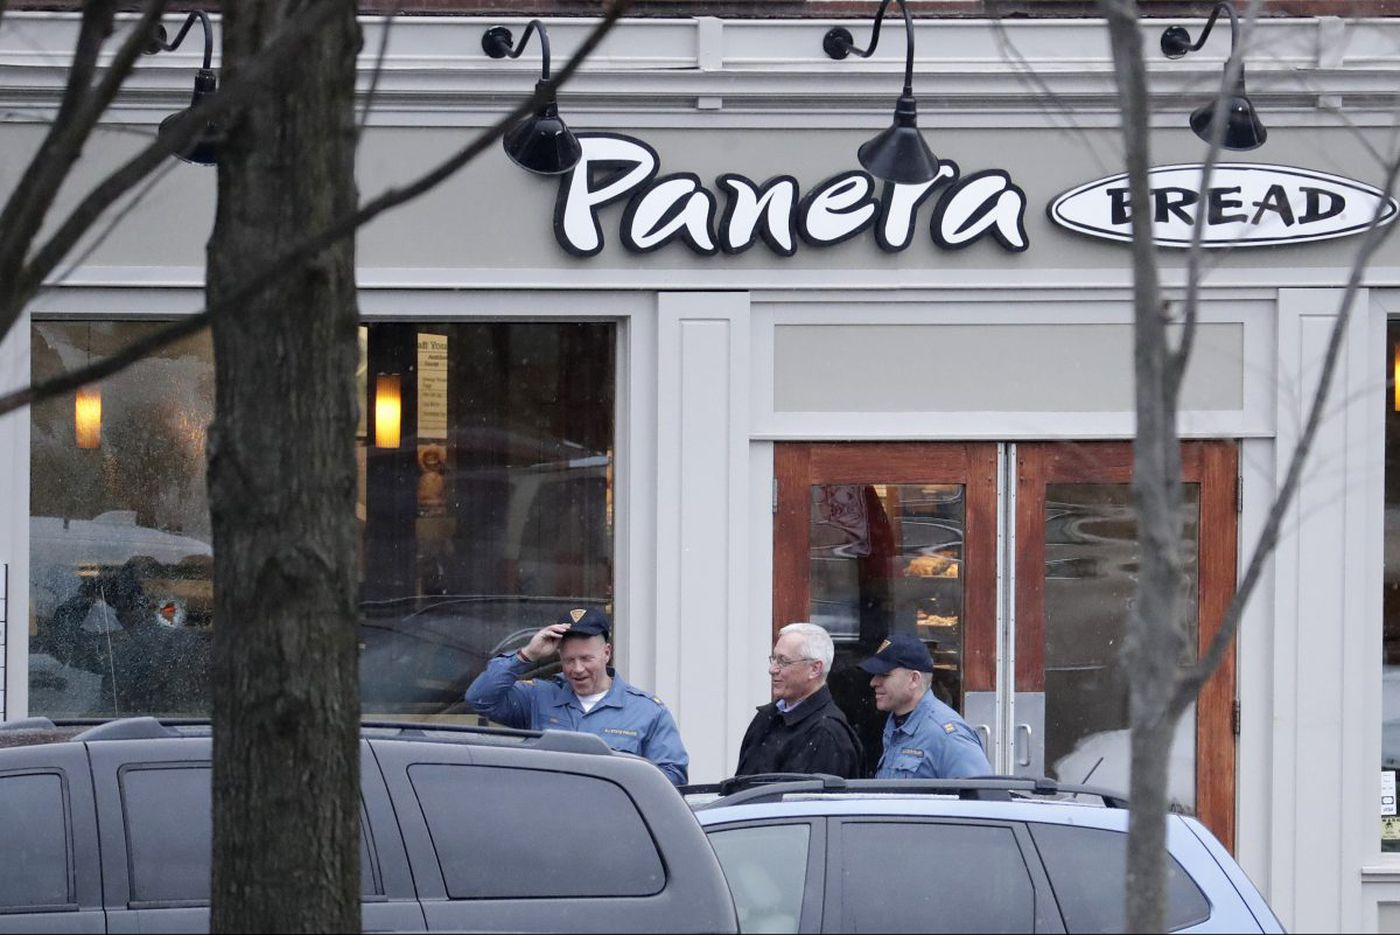 Man killed by police in Princeton standoff